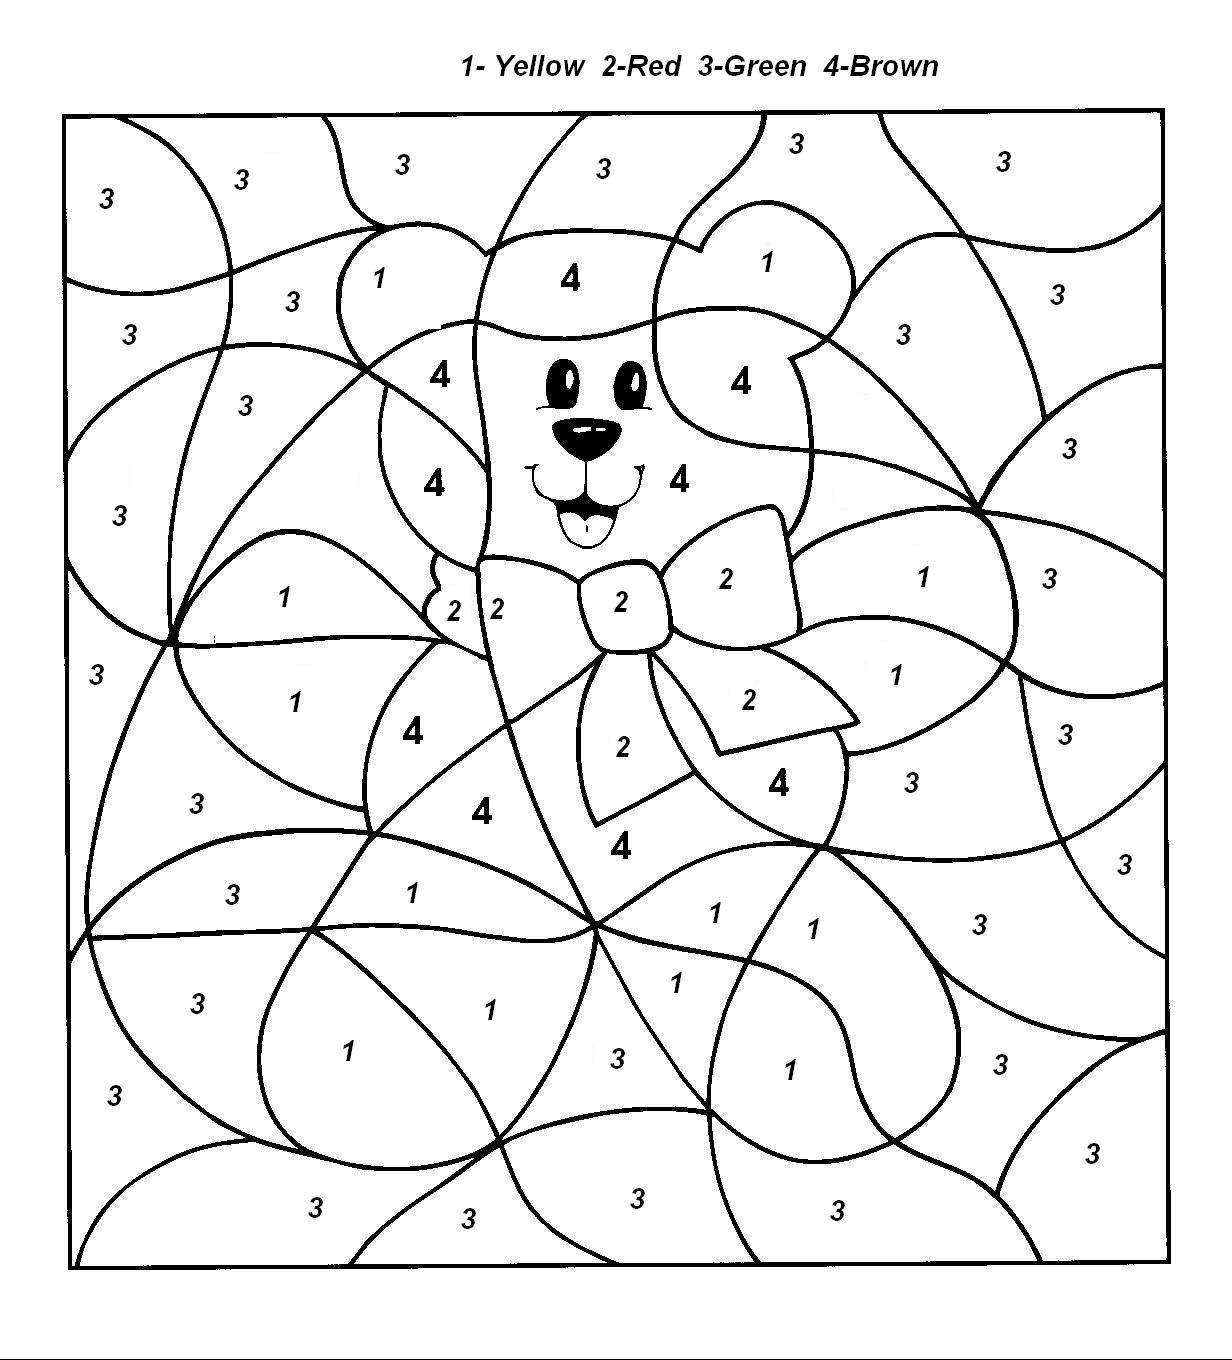 coloring by number for kids color by number cat coloring page for kids education coloring number kids for by